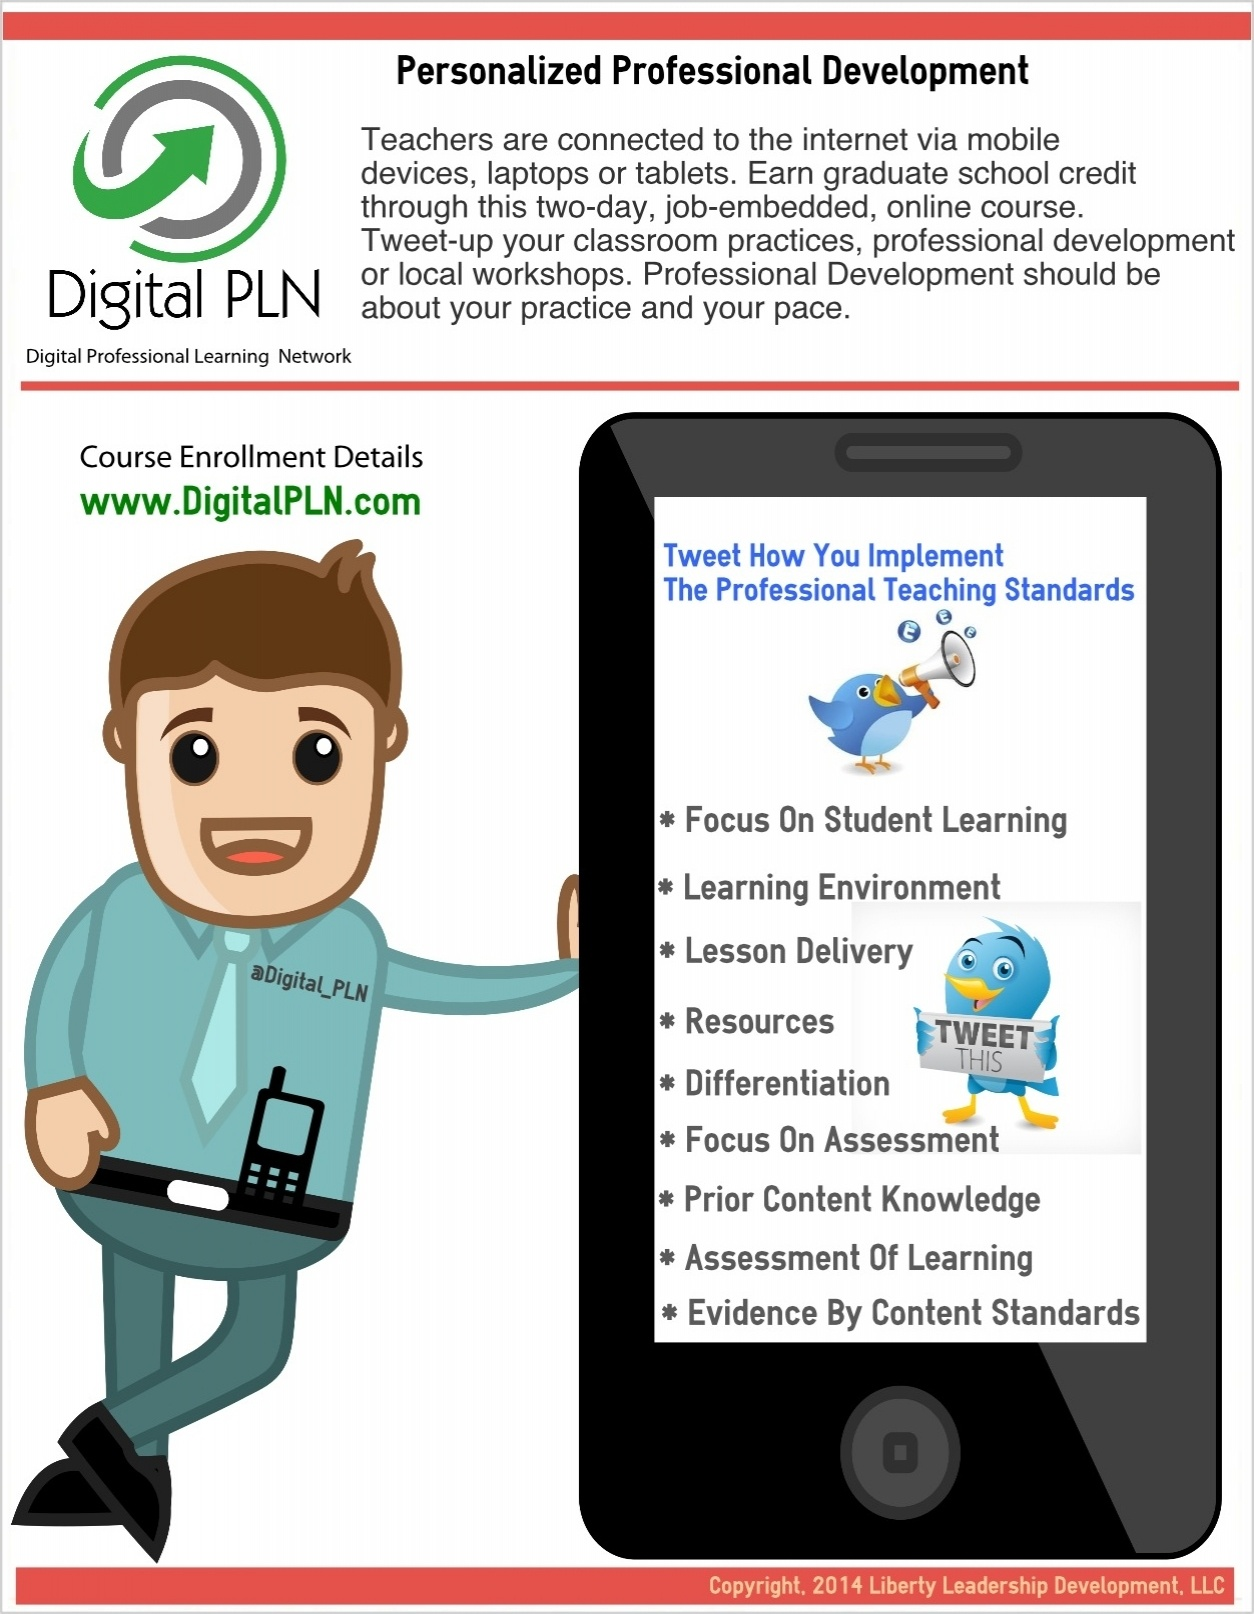 Personalized Professional Development Infographic